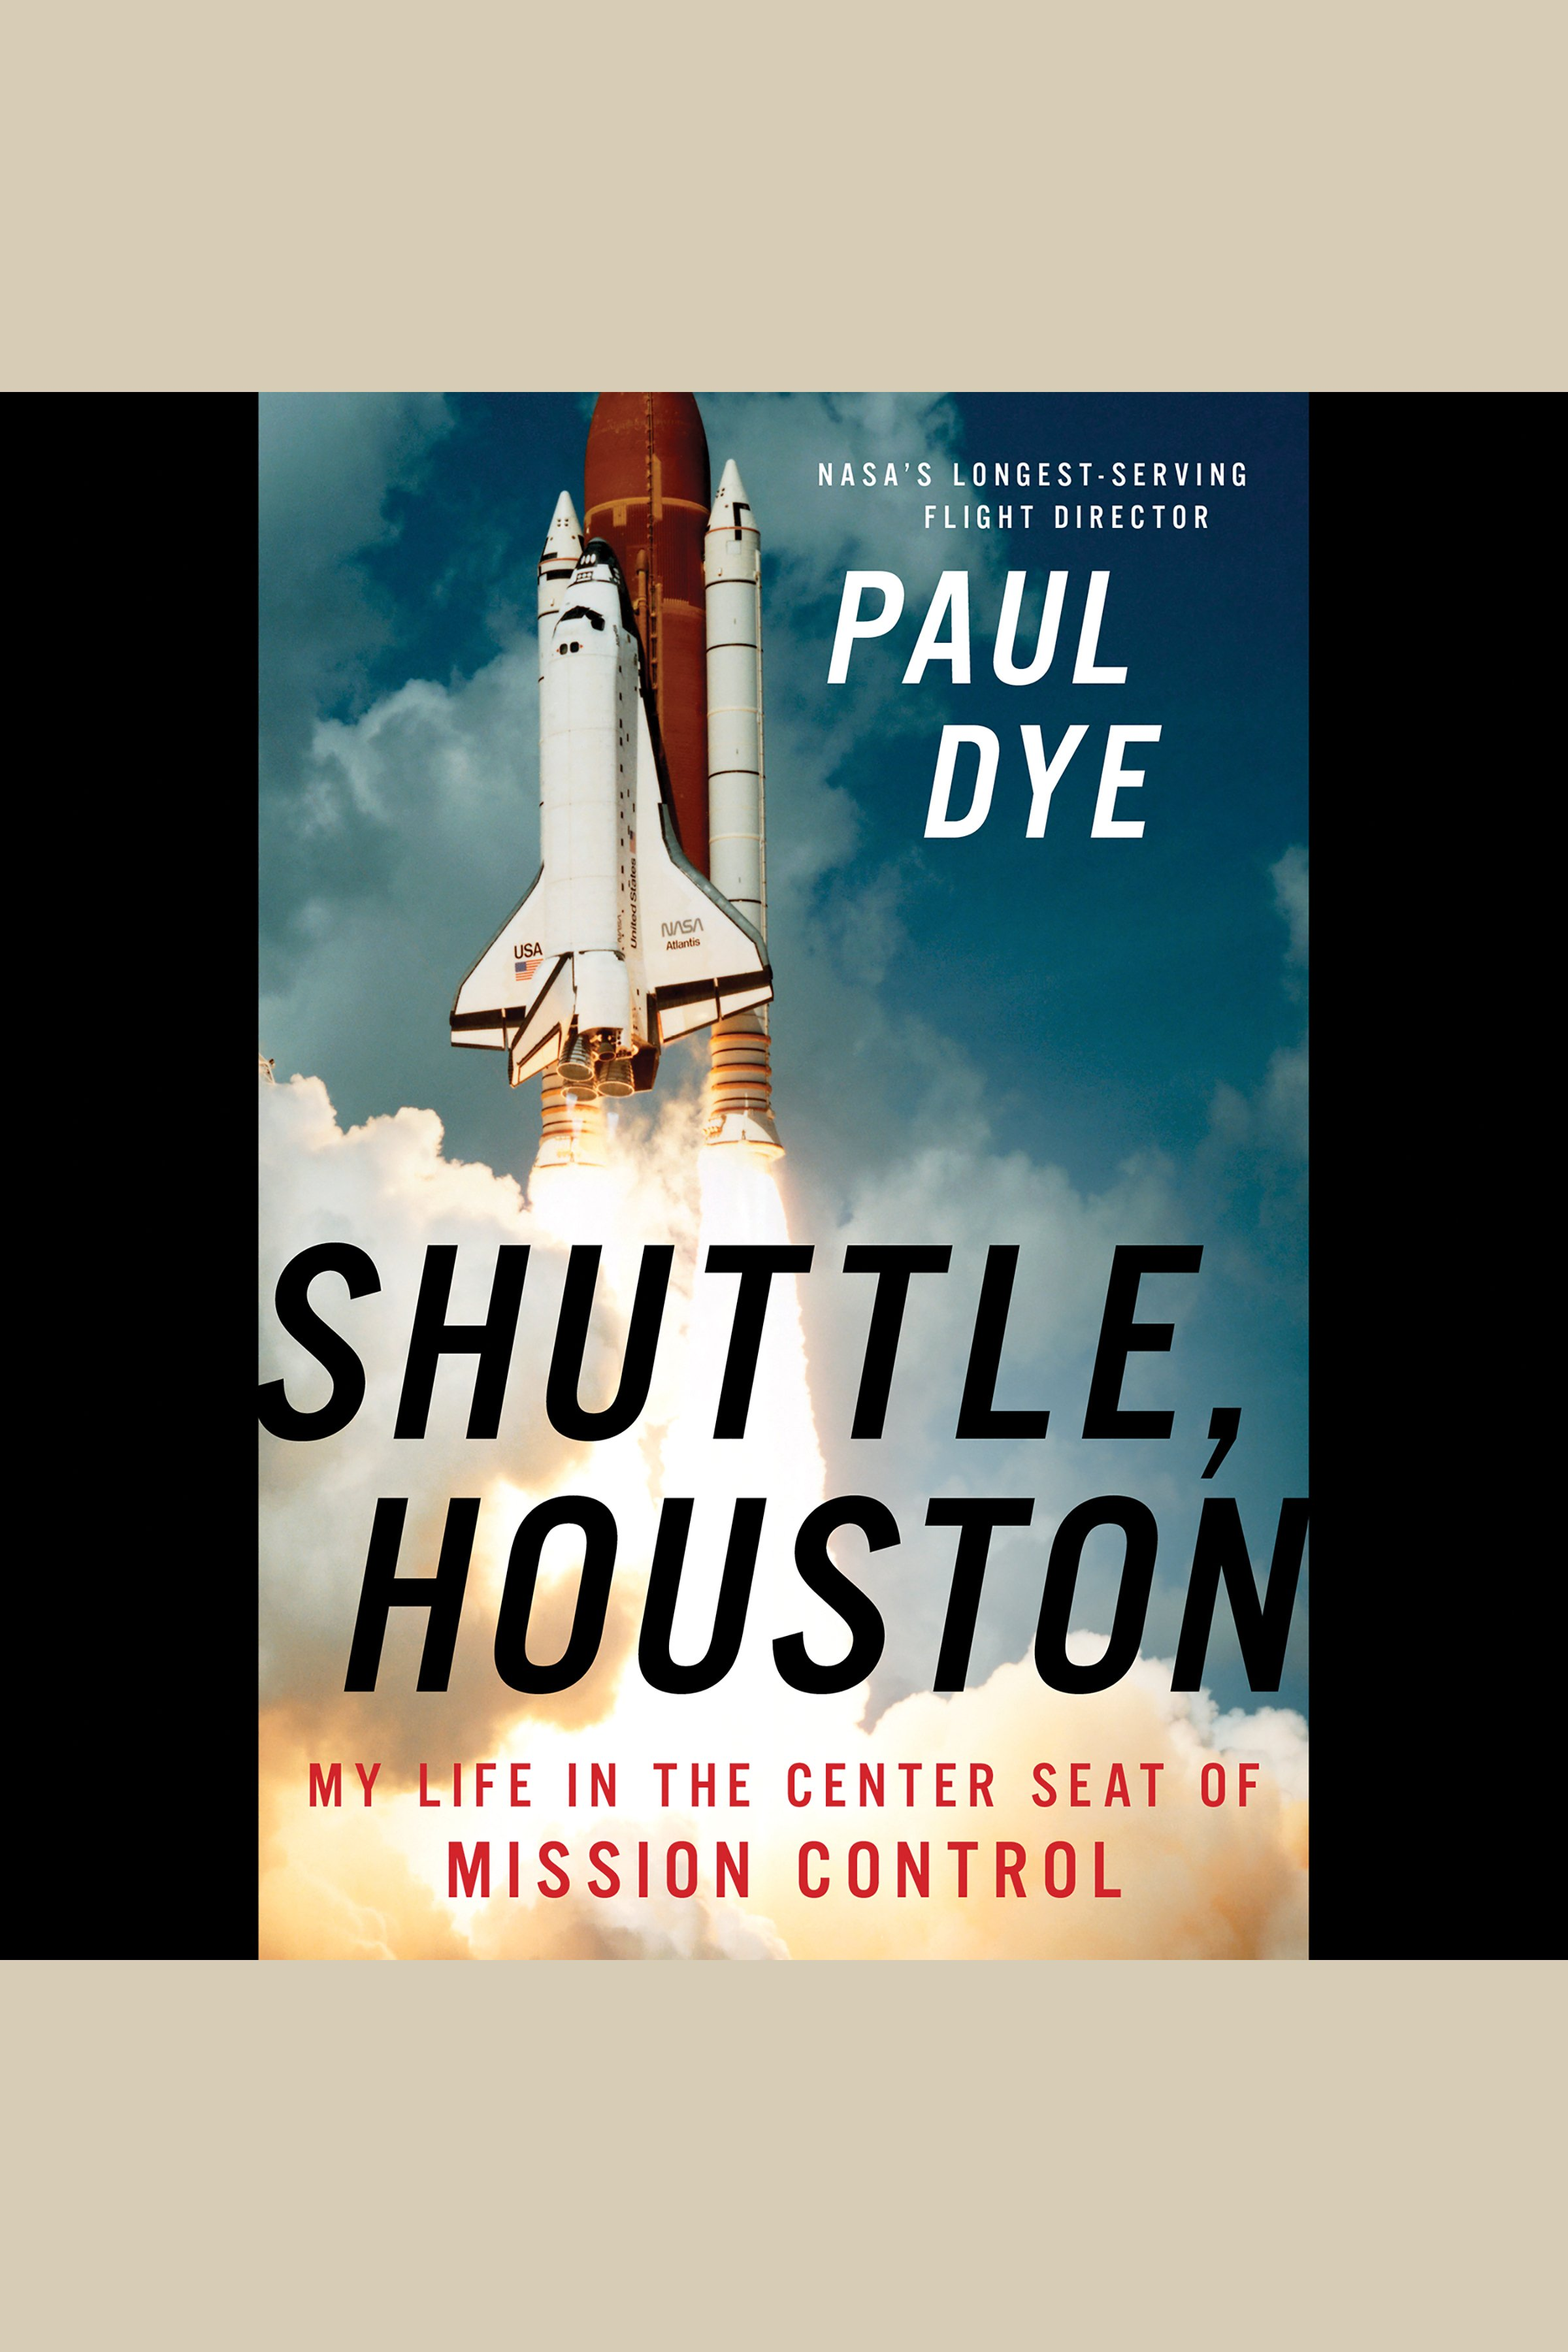 Shuttle, Houston my life in the center seat of Mission Control cover image